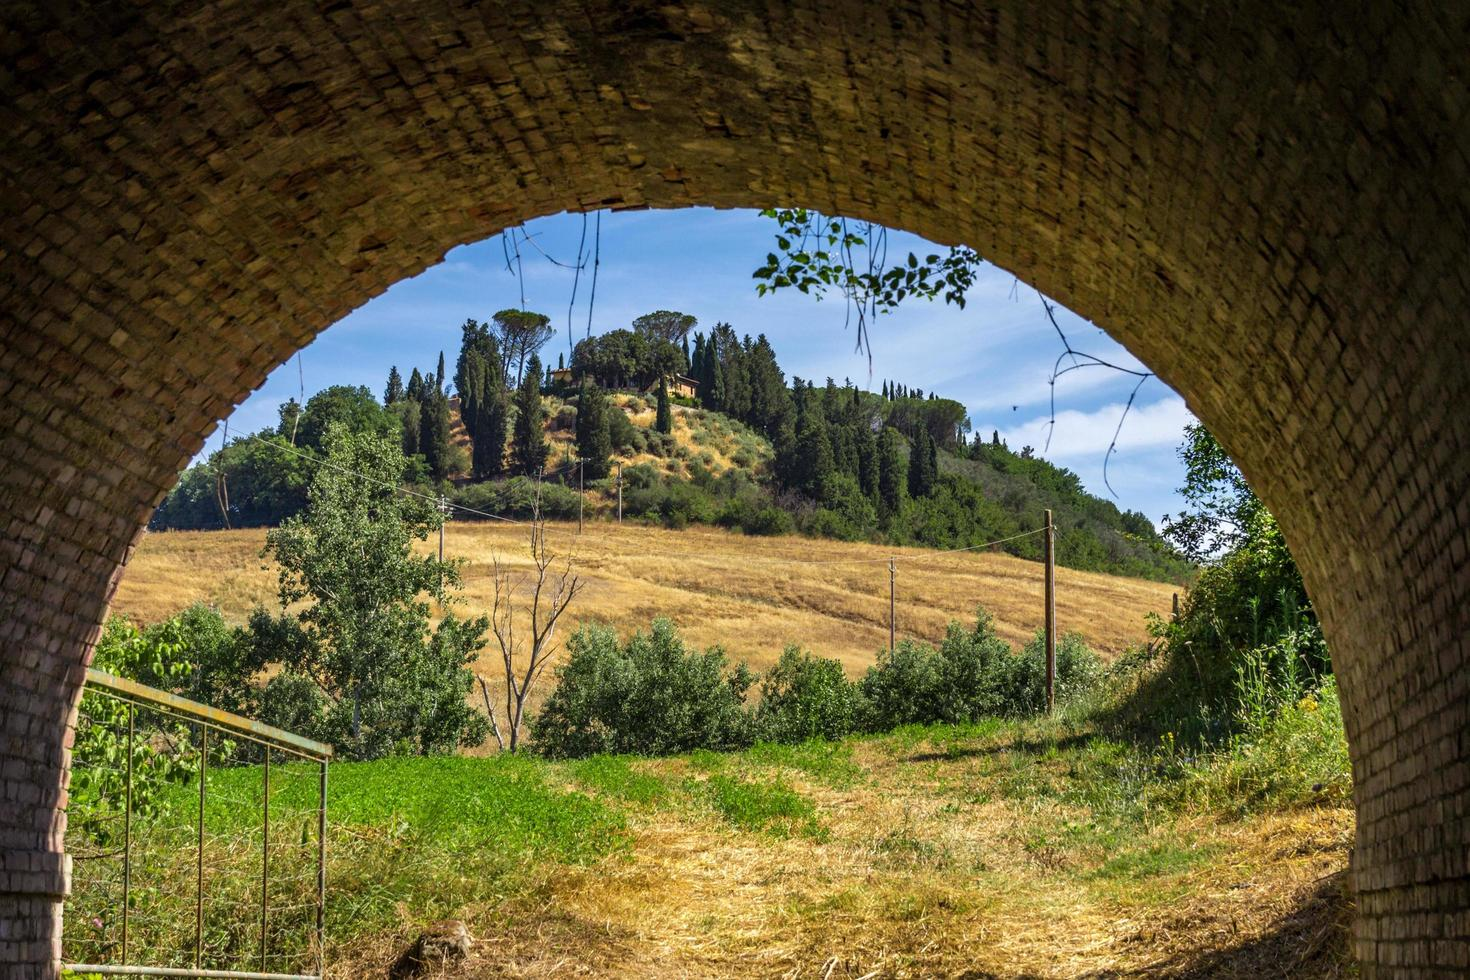 Tuscany, Italy, 2020 - View of a house on a hill through a tunnel photo